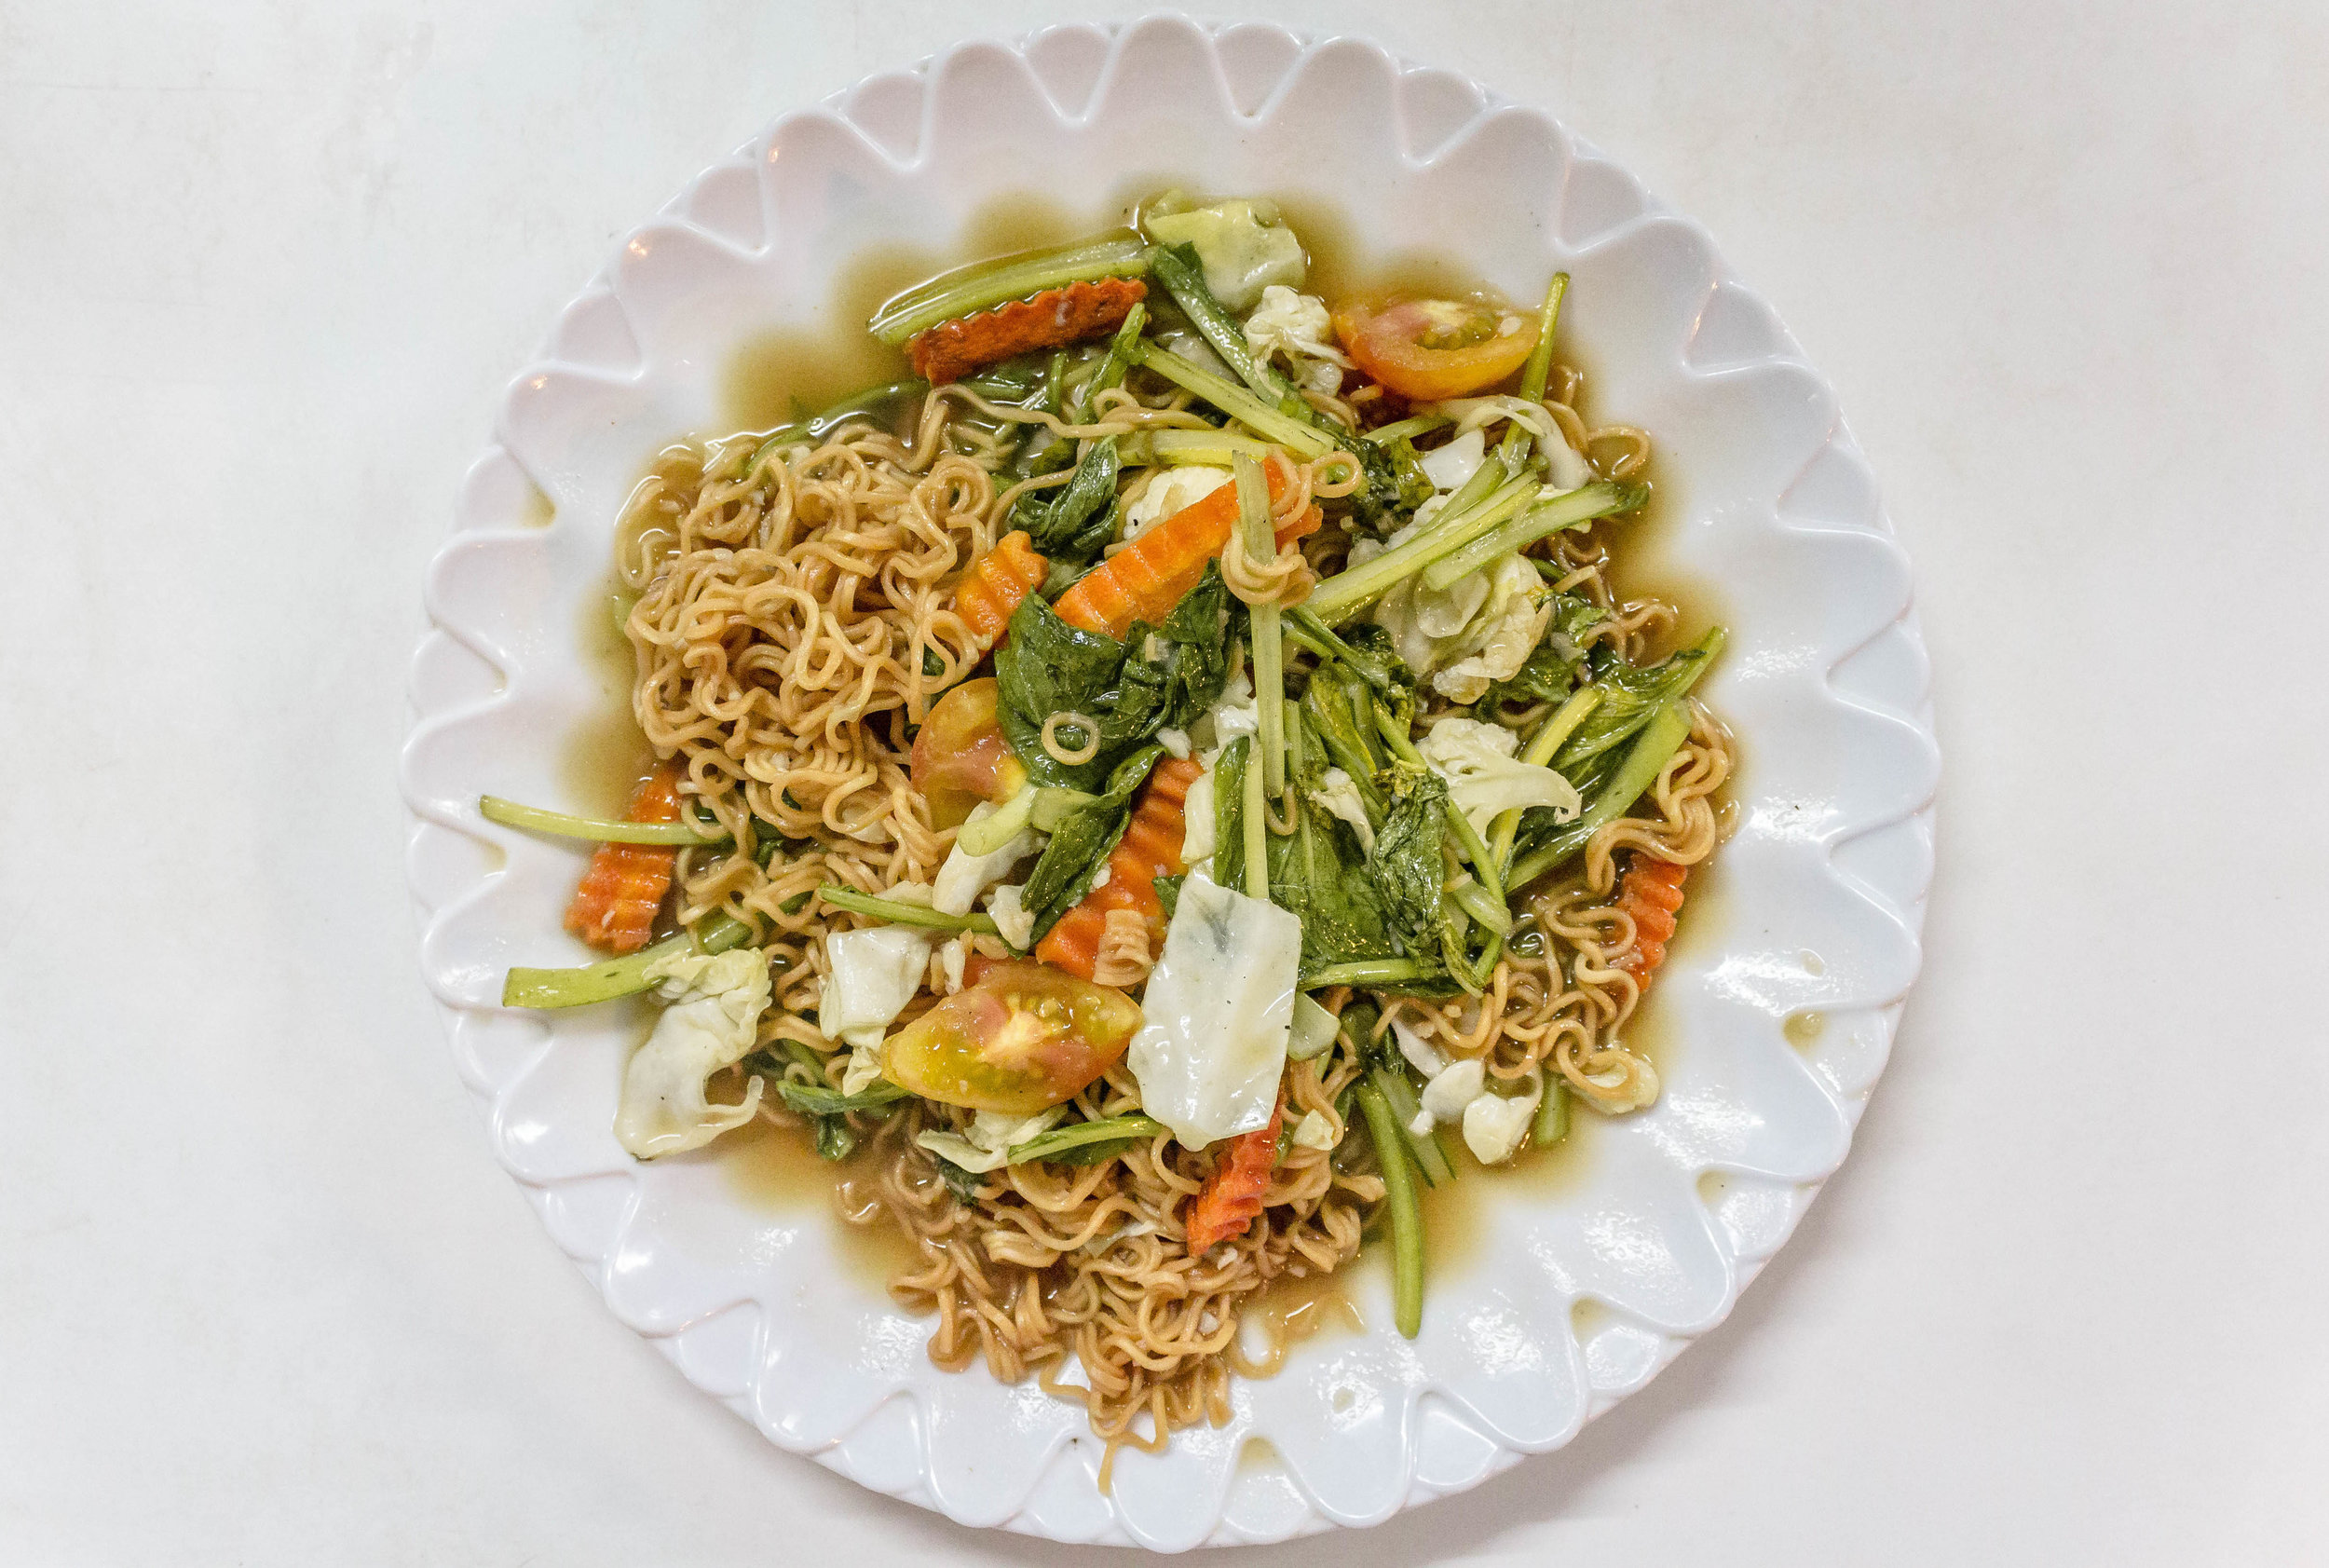 Bamboo's fried yellow noodle